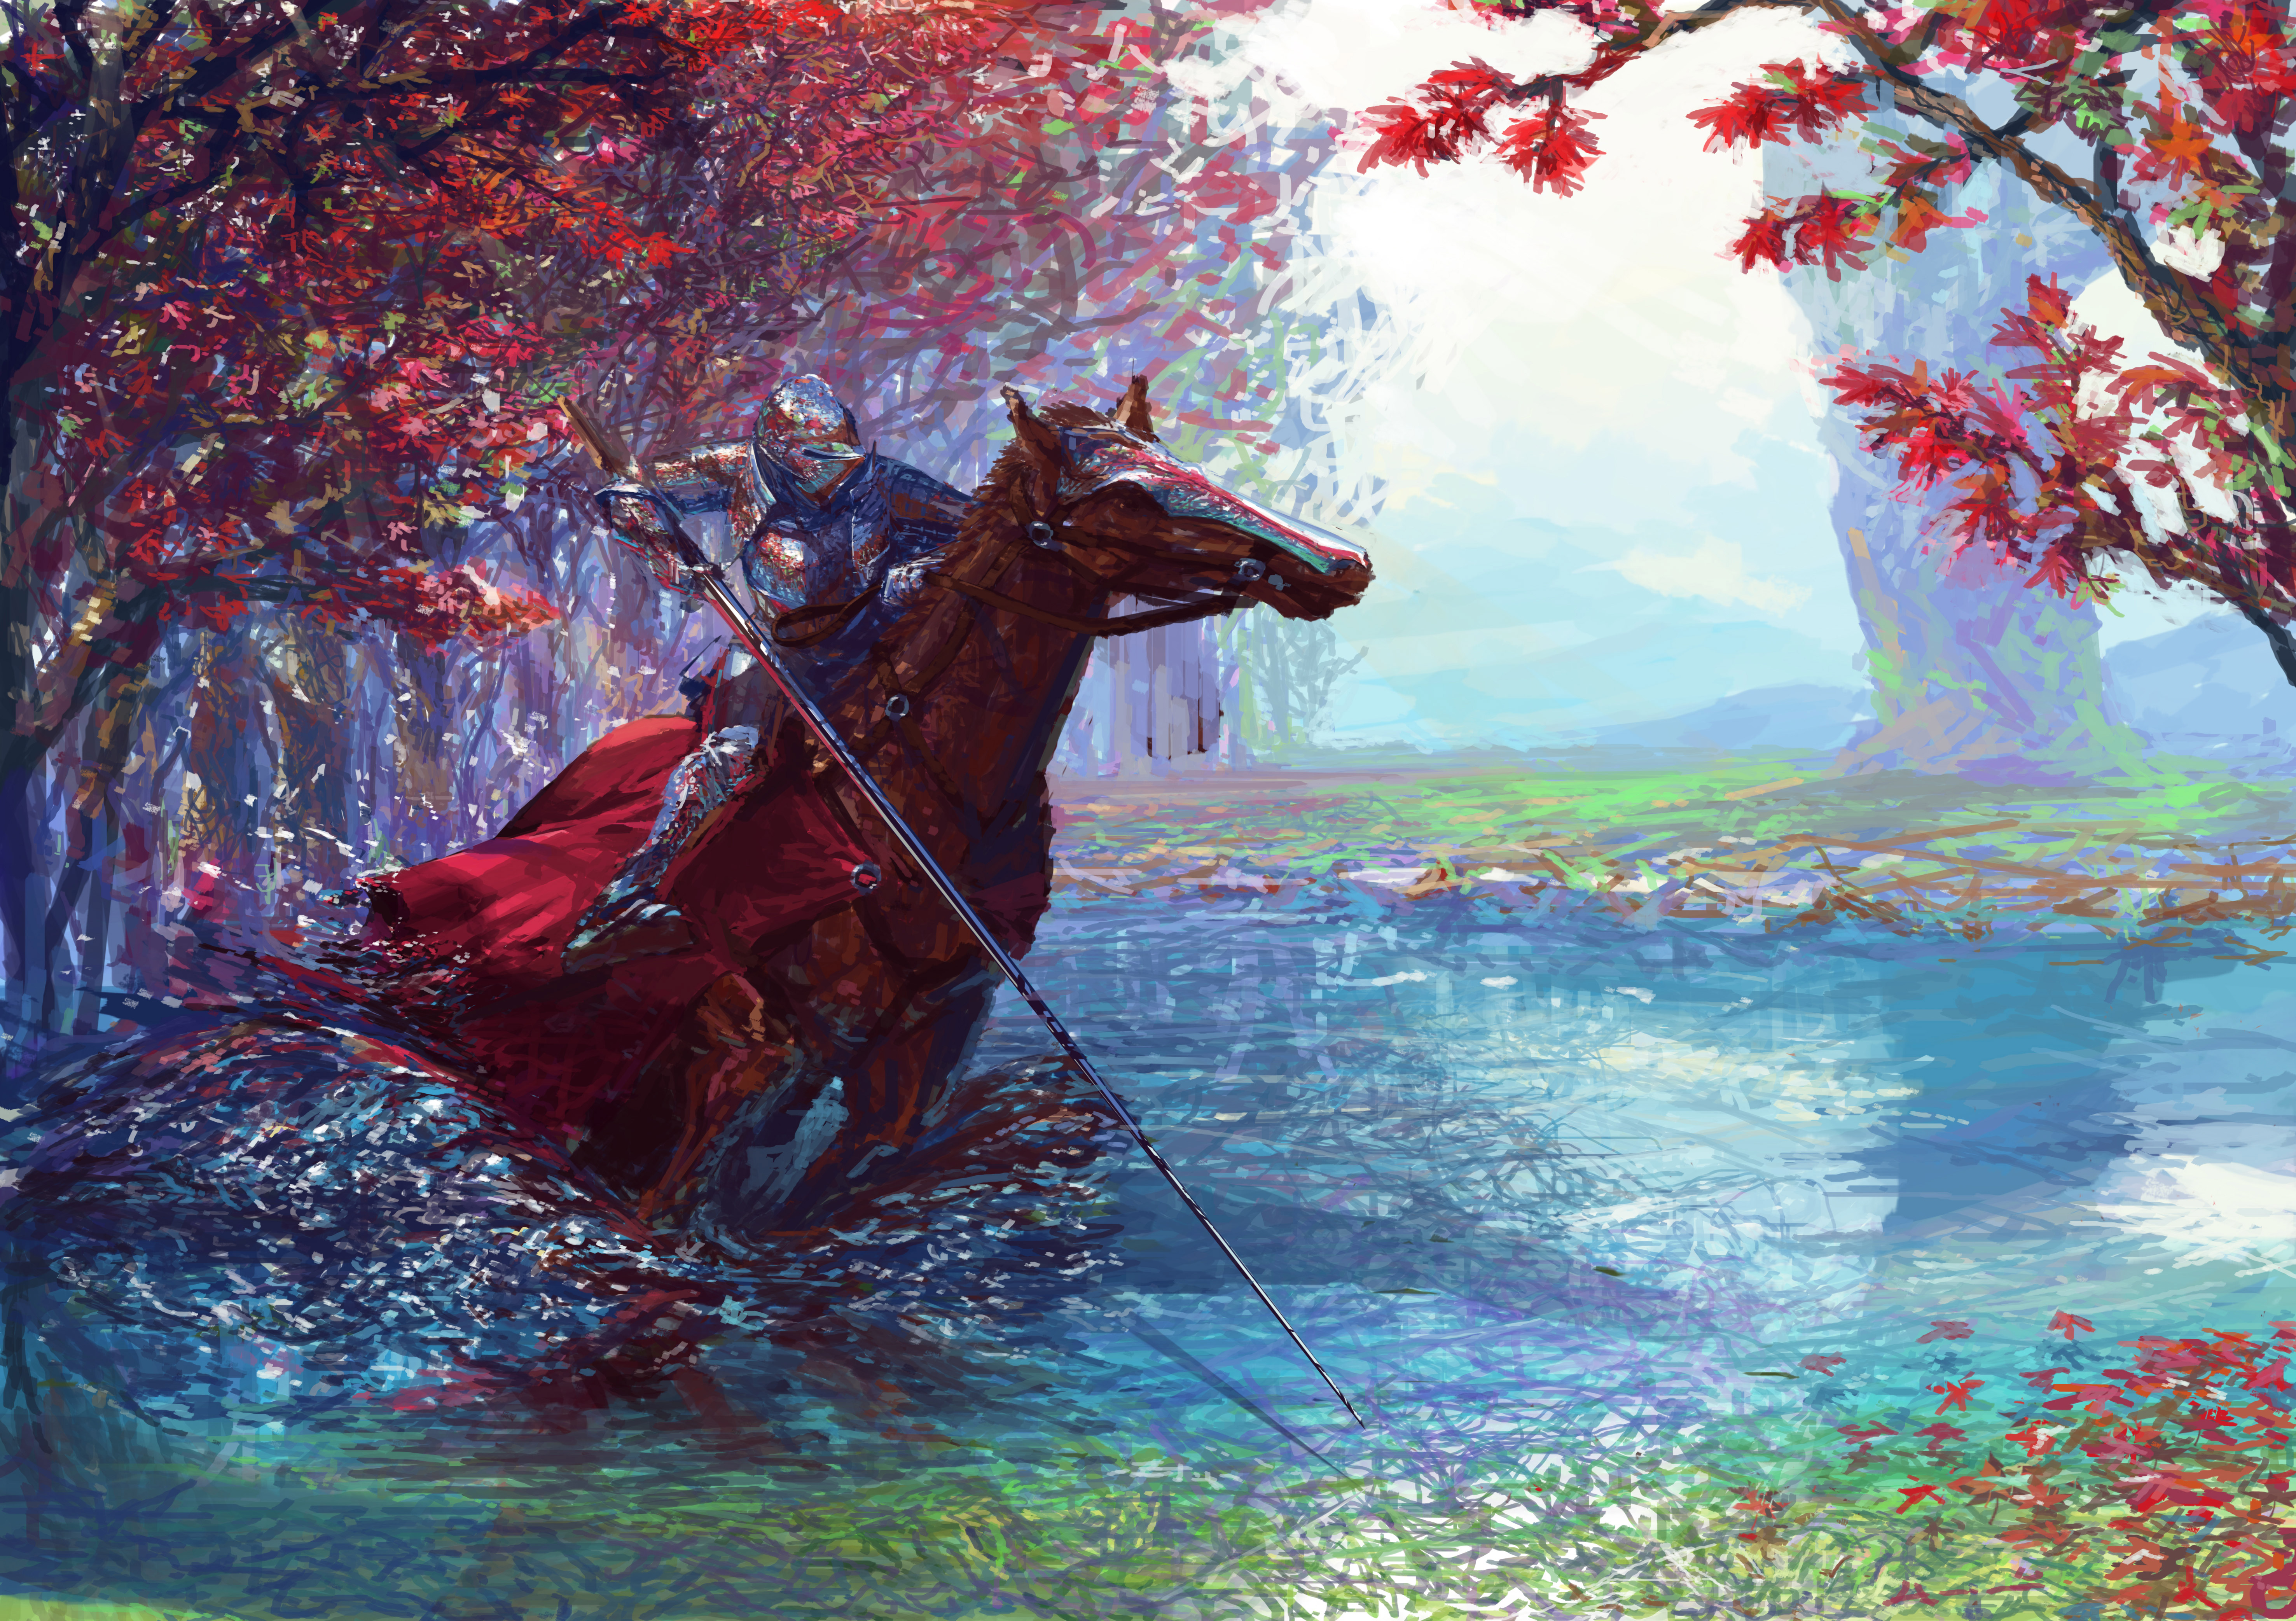 Knight On Horse With Sword 5k Hd Artist 4k Wallpapers Images Backgrounds Photos And Pictures